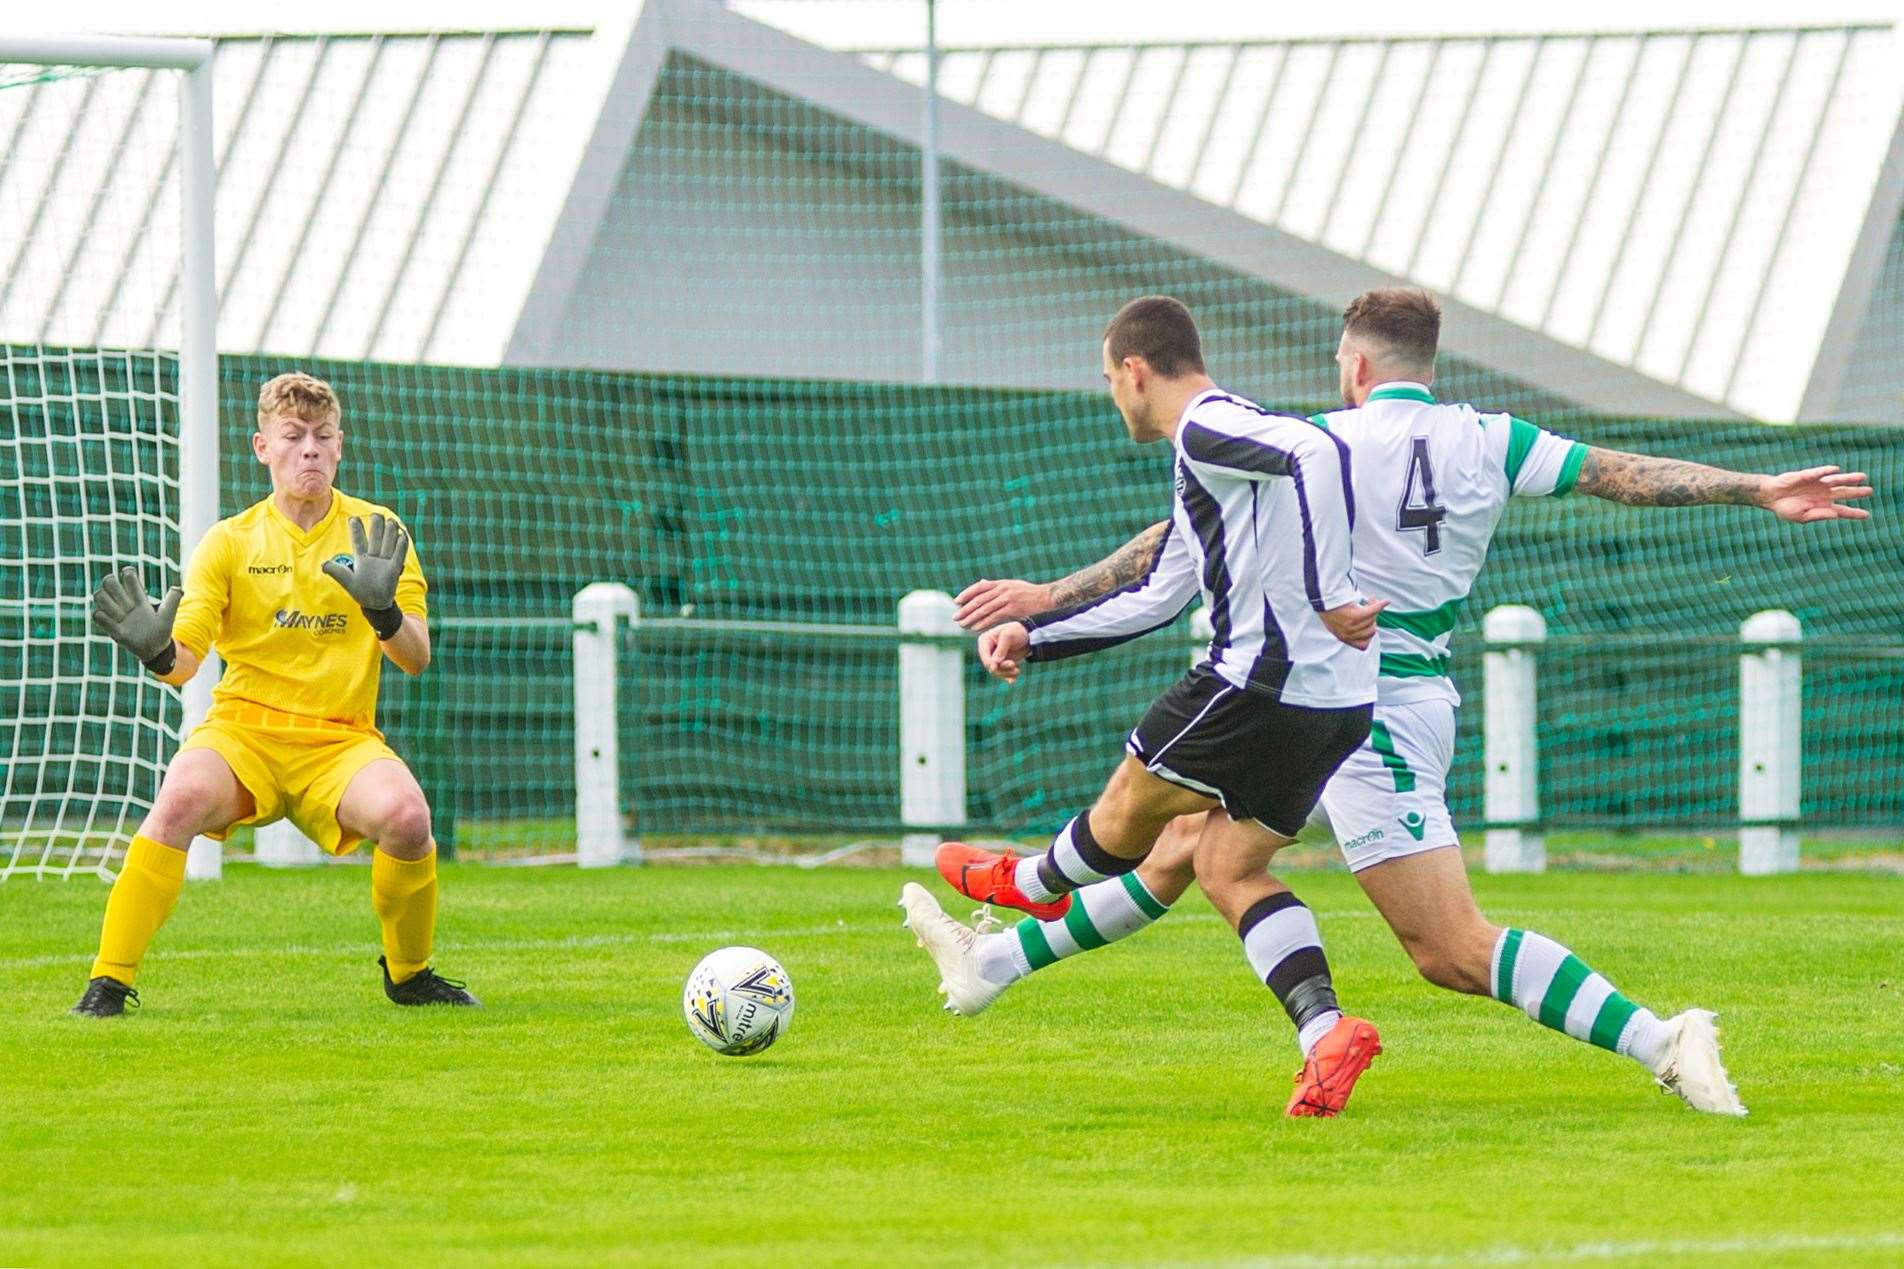 Scott Barbour was one of three hat-trick scorers for Fraserburgh in their 13-1 thrashing of Turriff United.